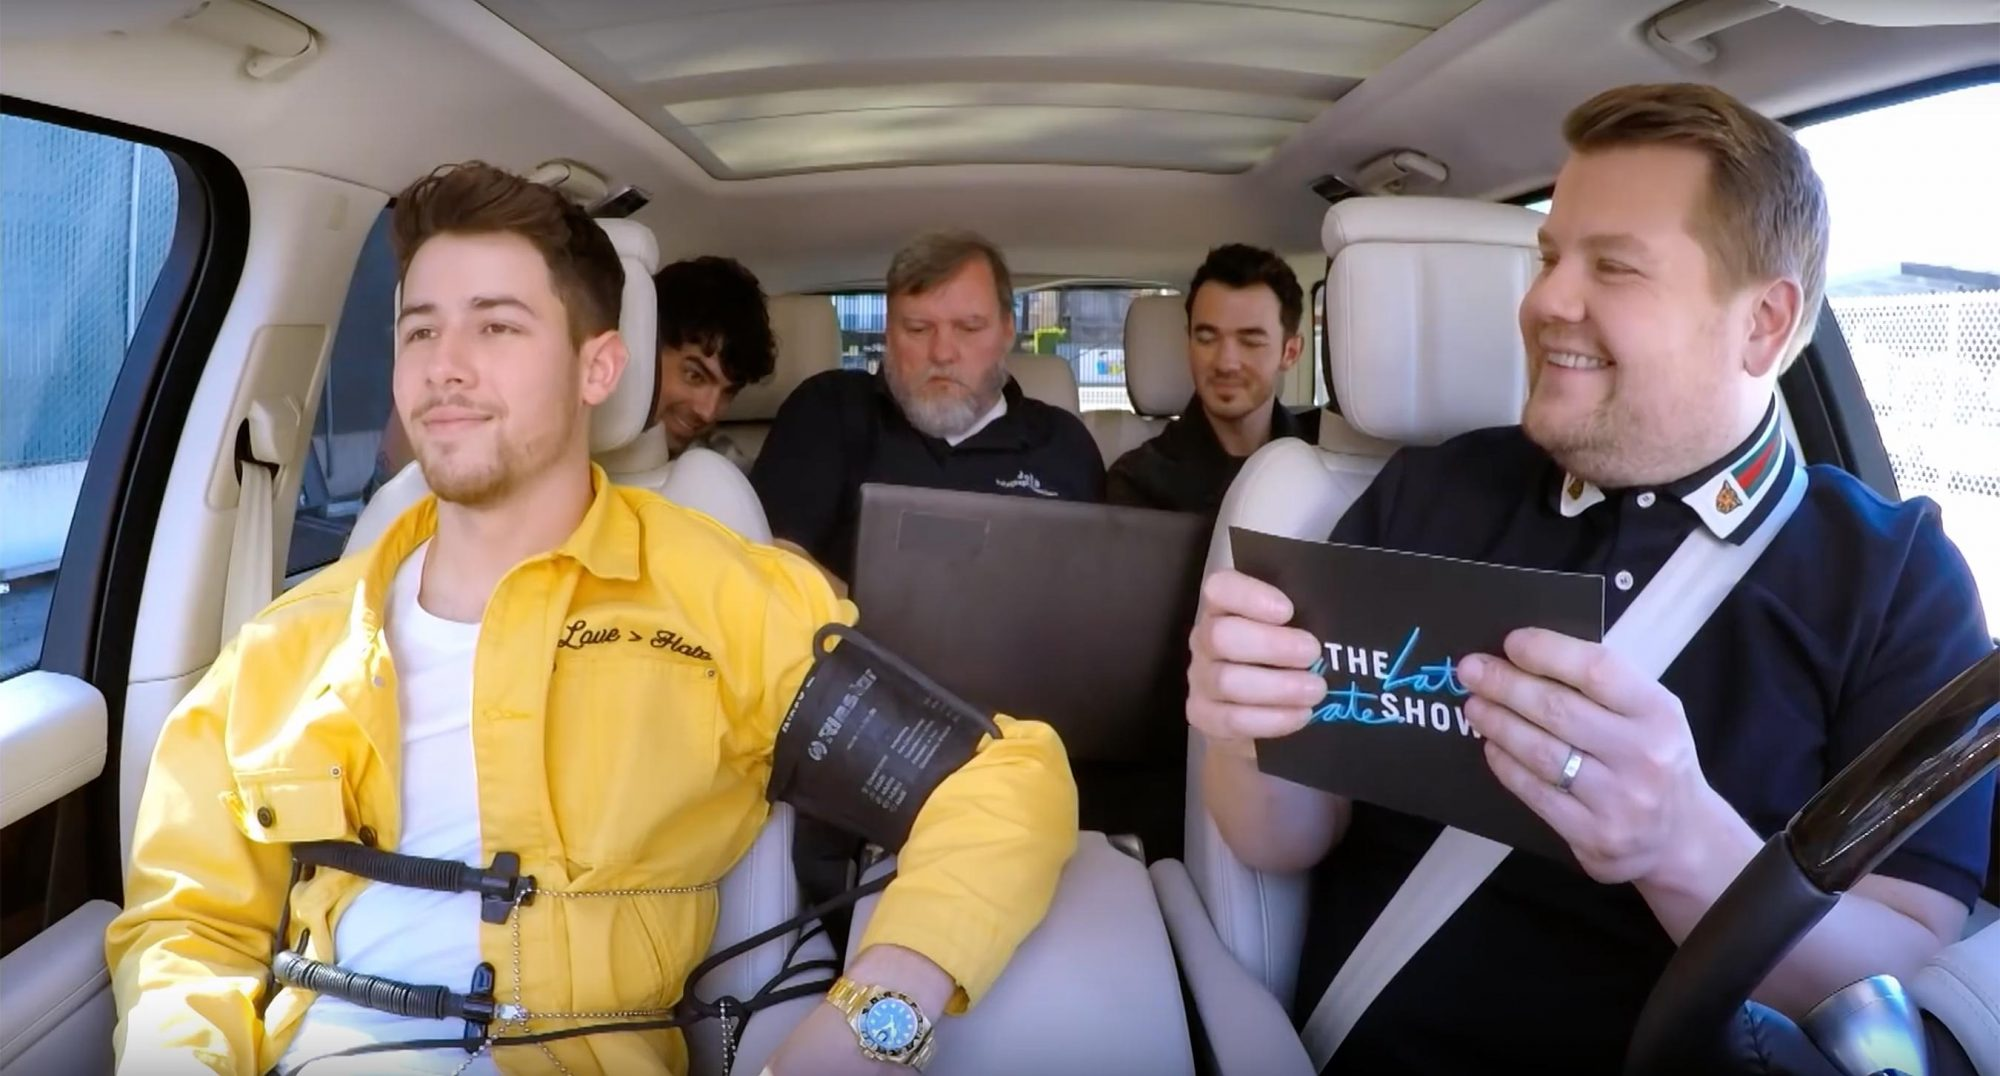 jonas-bros-carpool-karaoke